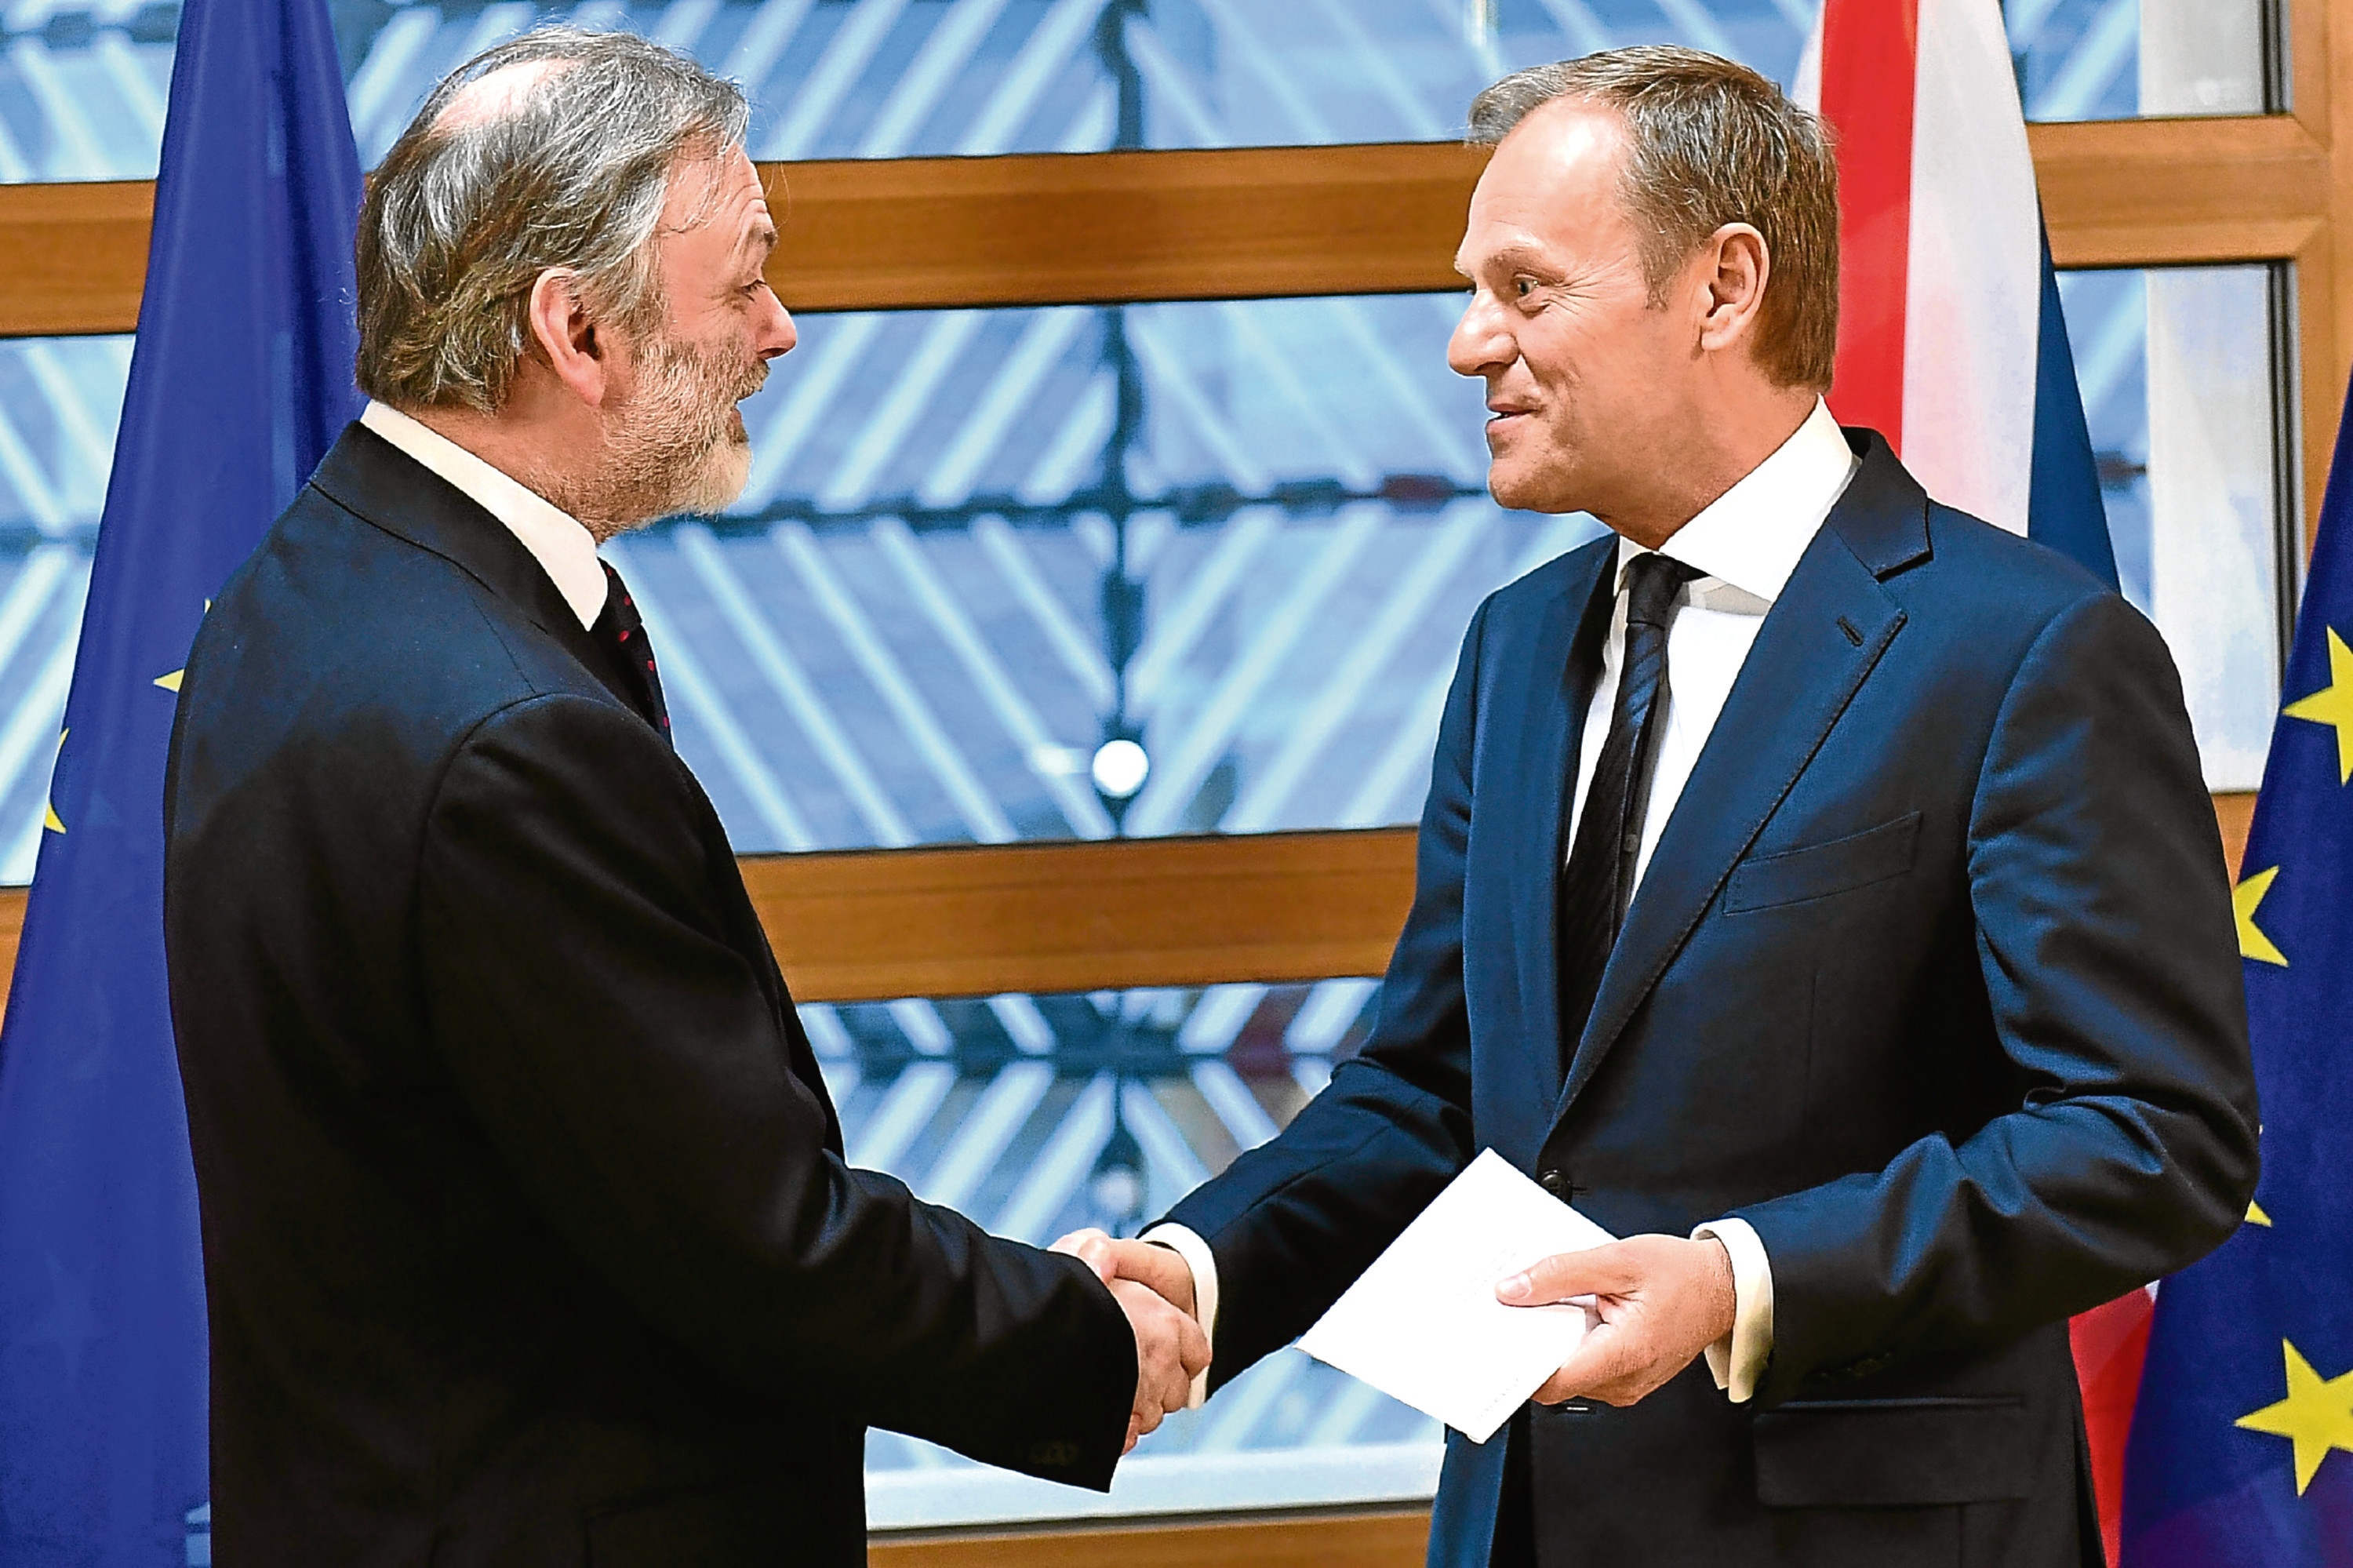 EU Council President Donald Tusk, right, shakes hands with UK Permanent Representative to the EU Tim Barrow after getting British Prime Minister Theresa May's formal notice to leave the bloc under Article 50 of the EU's Lisbon Treaty, in Brussels, Wednesday, March 29, 2017. (Emmanuel Dunand, Pool via AP)